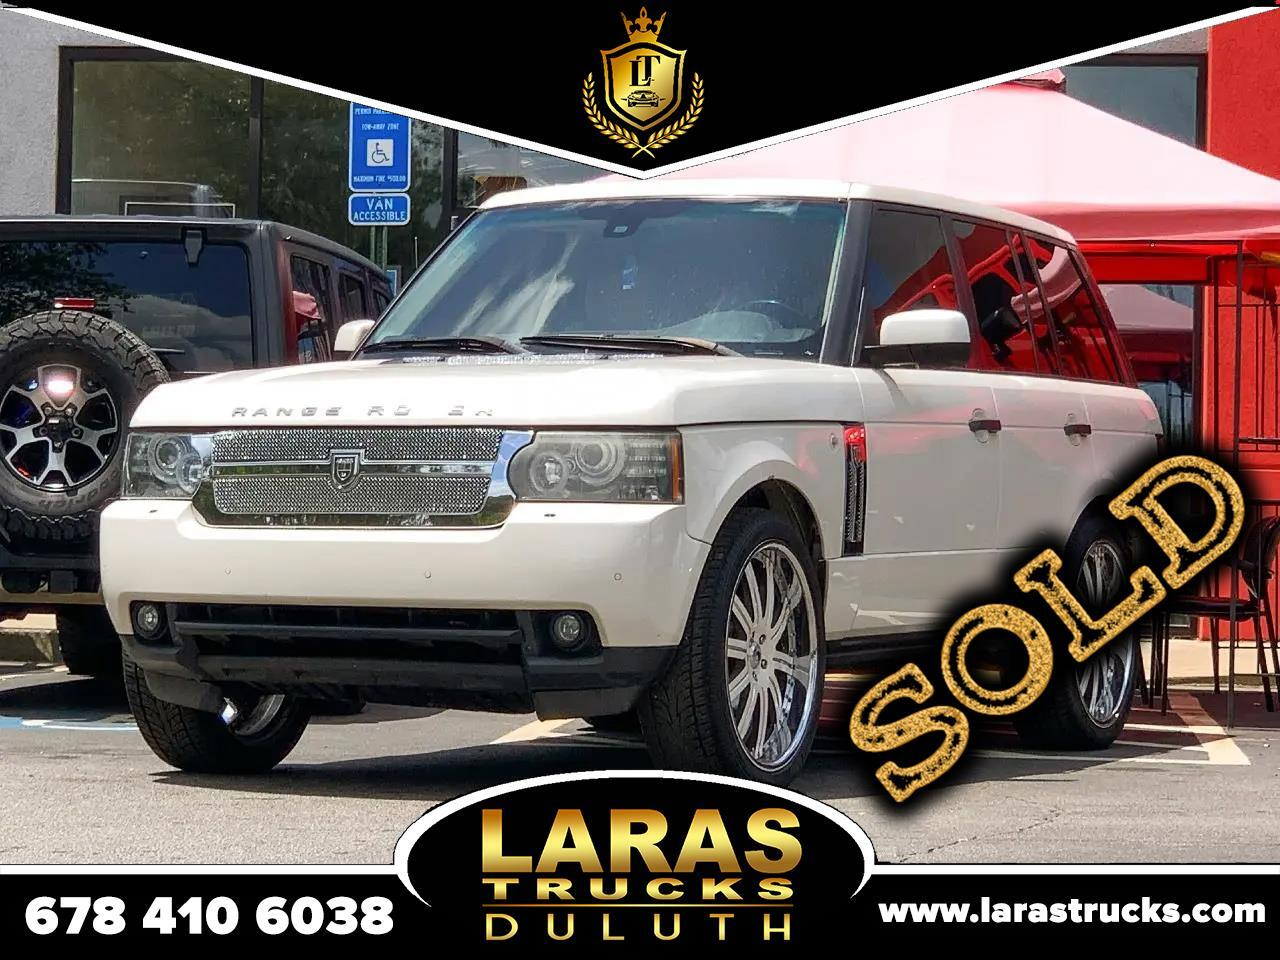 Land Rover Range Rover 4WD 4dr HSE LUX 2010